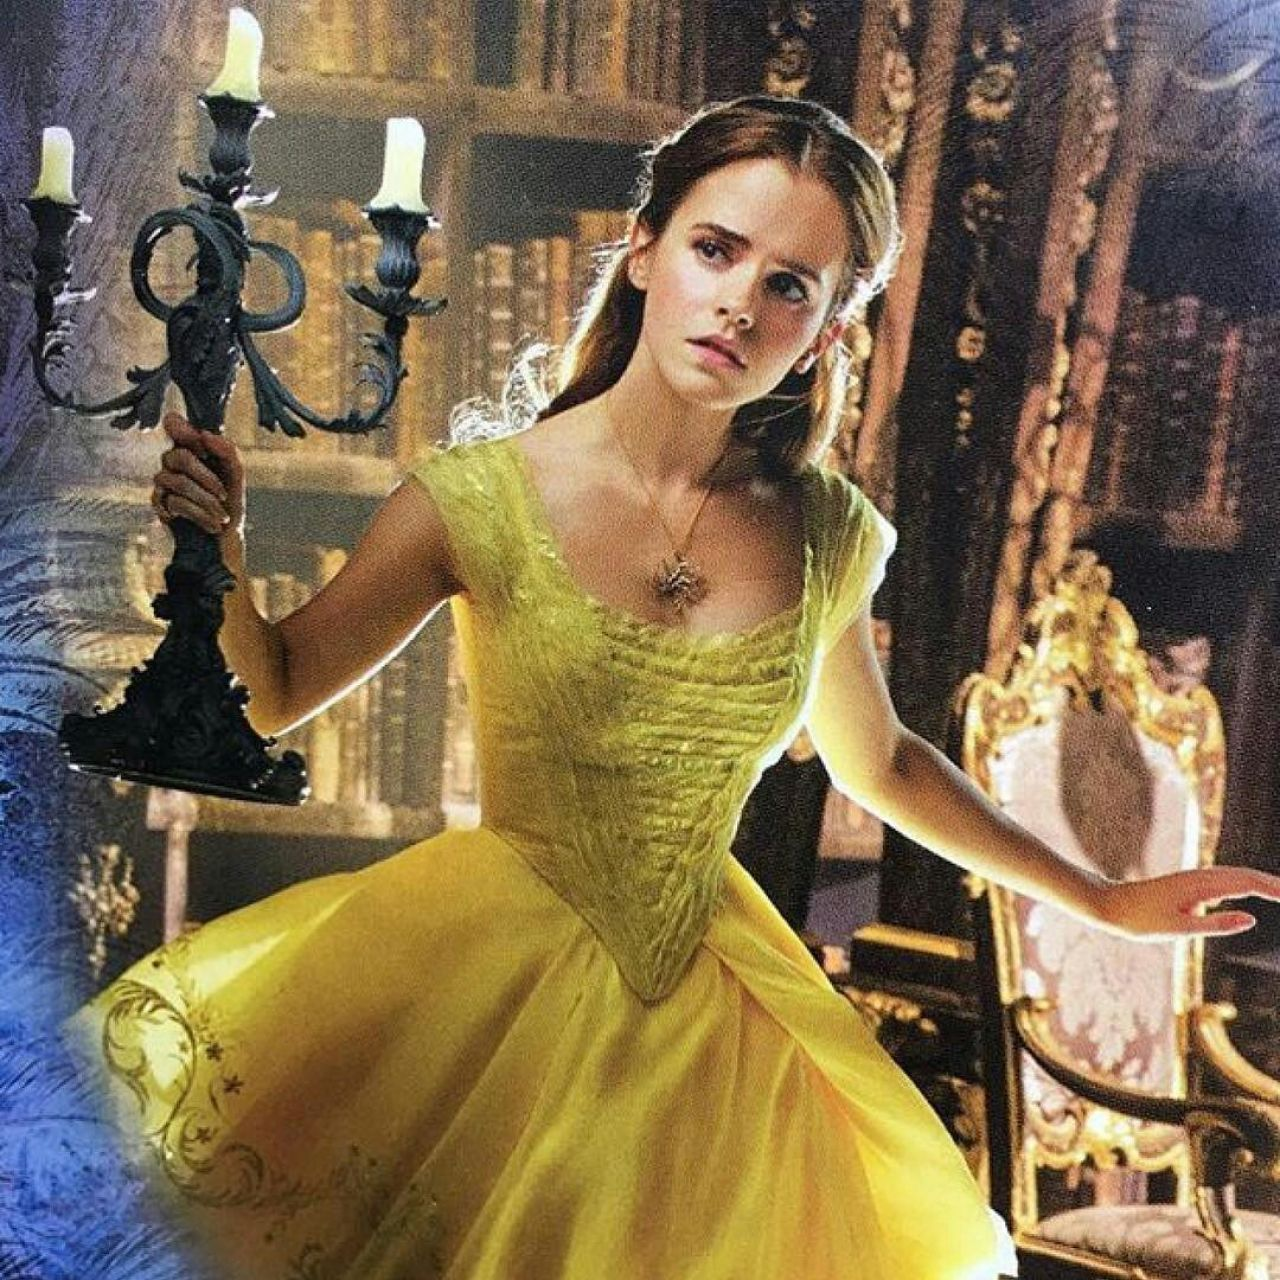 Emma Watson Beauty And The Beast 2017 Posters Promotional Photos